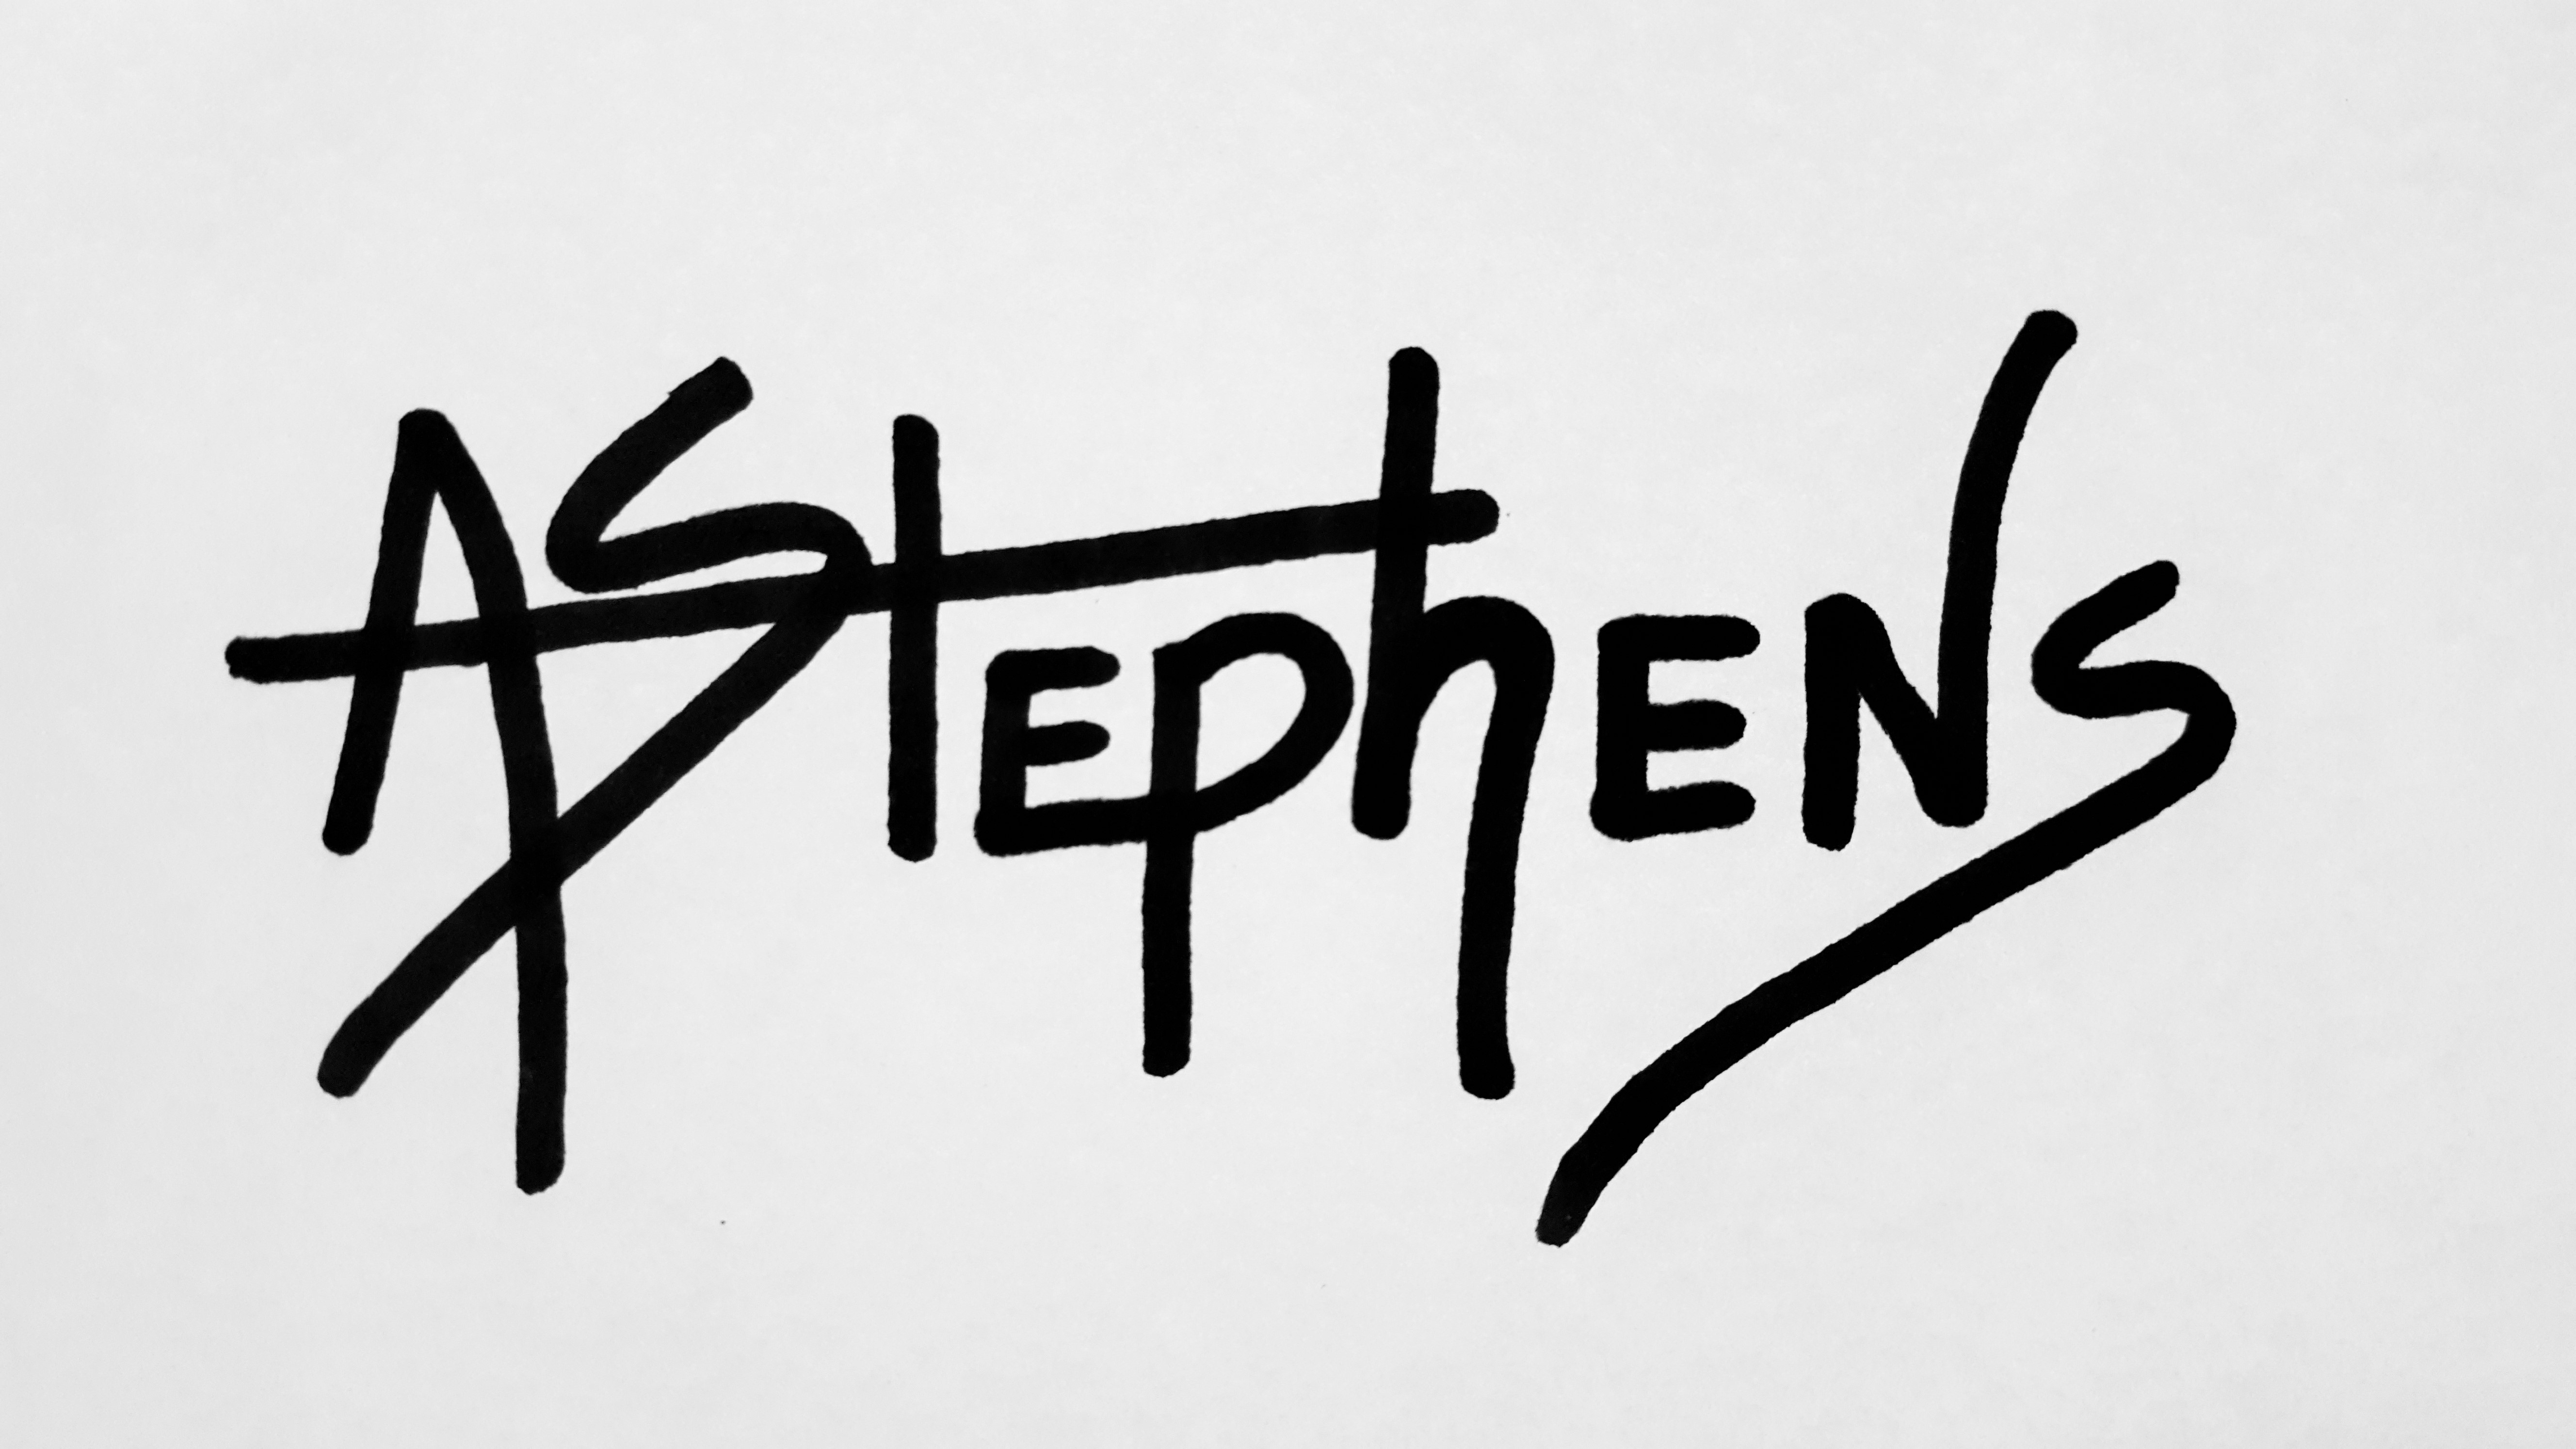 Amy Stephens's Signature